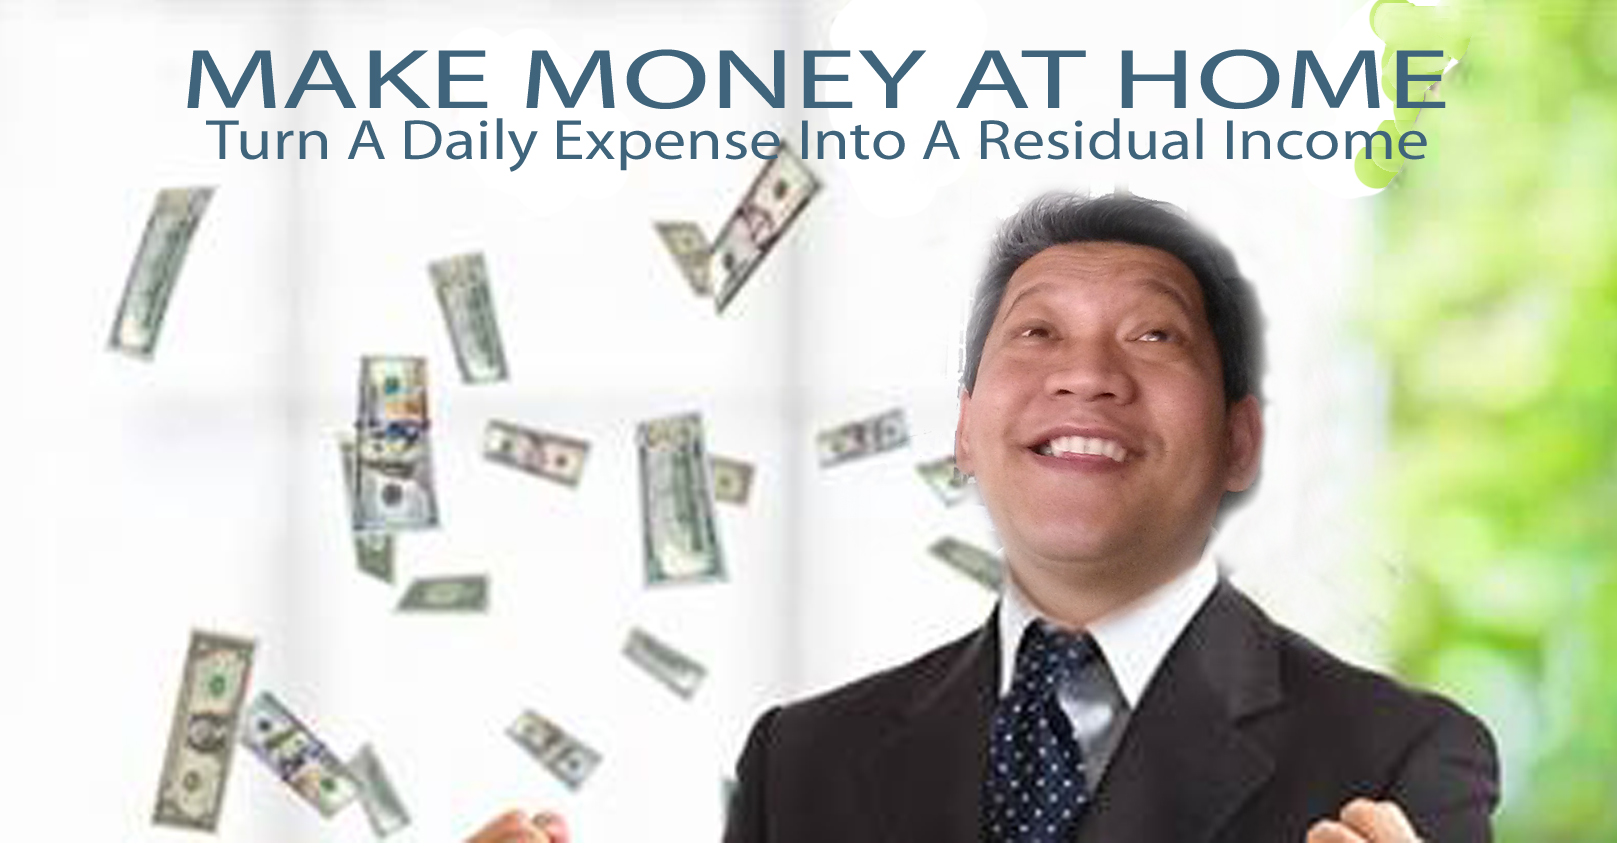 What To Make At Home To Make Money